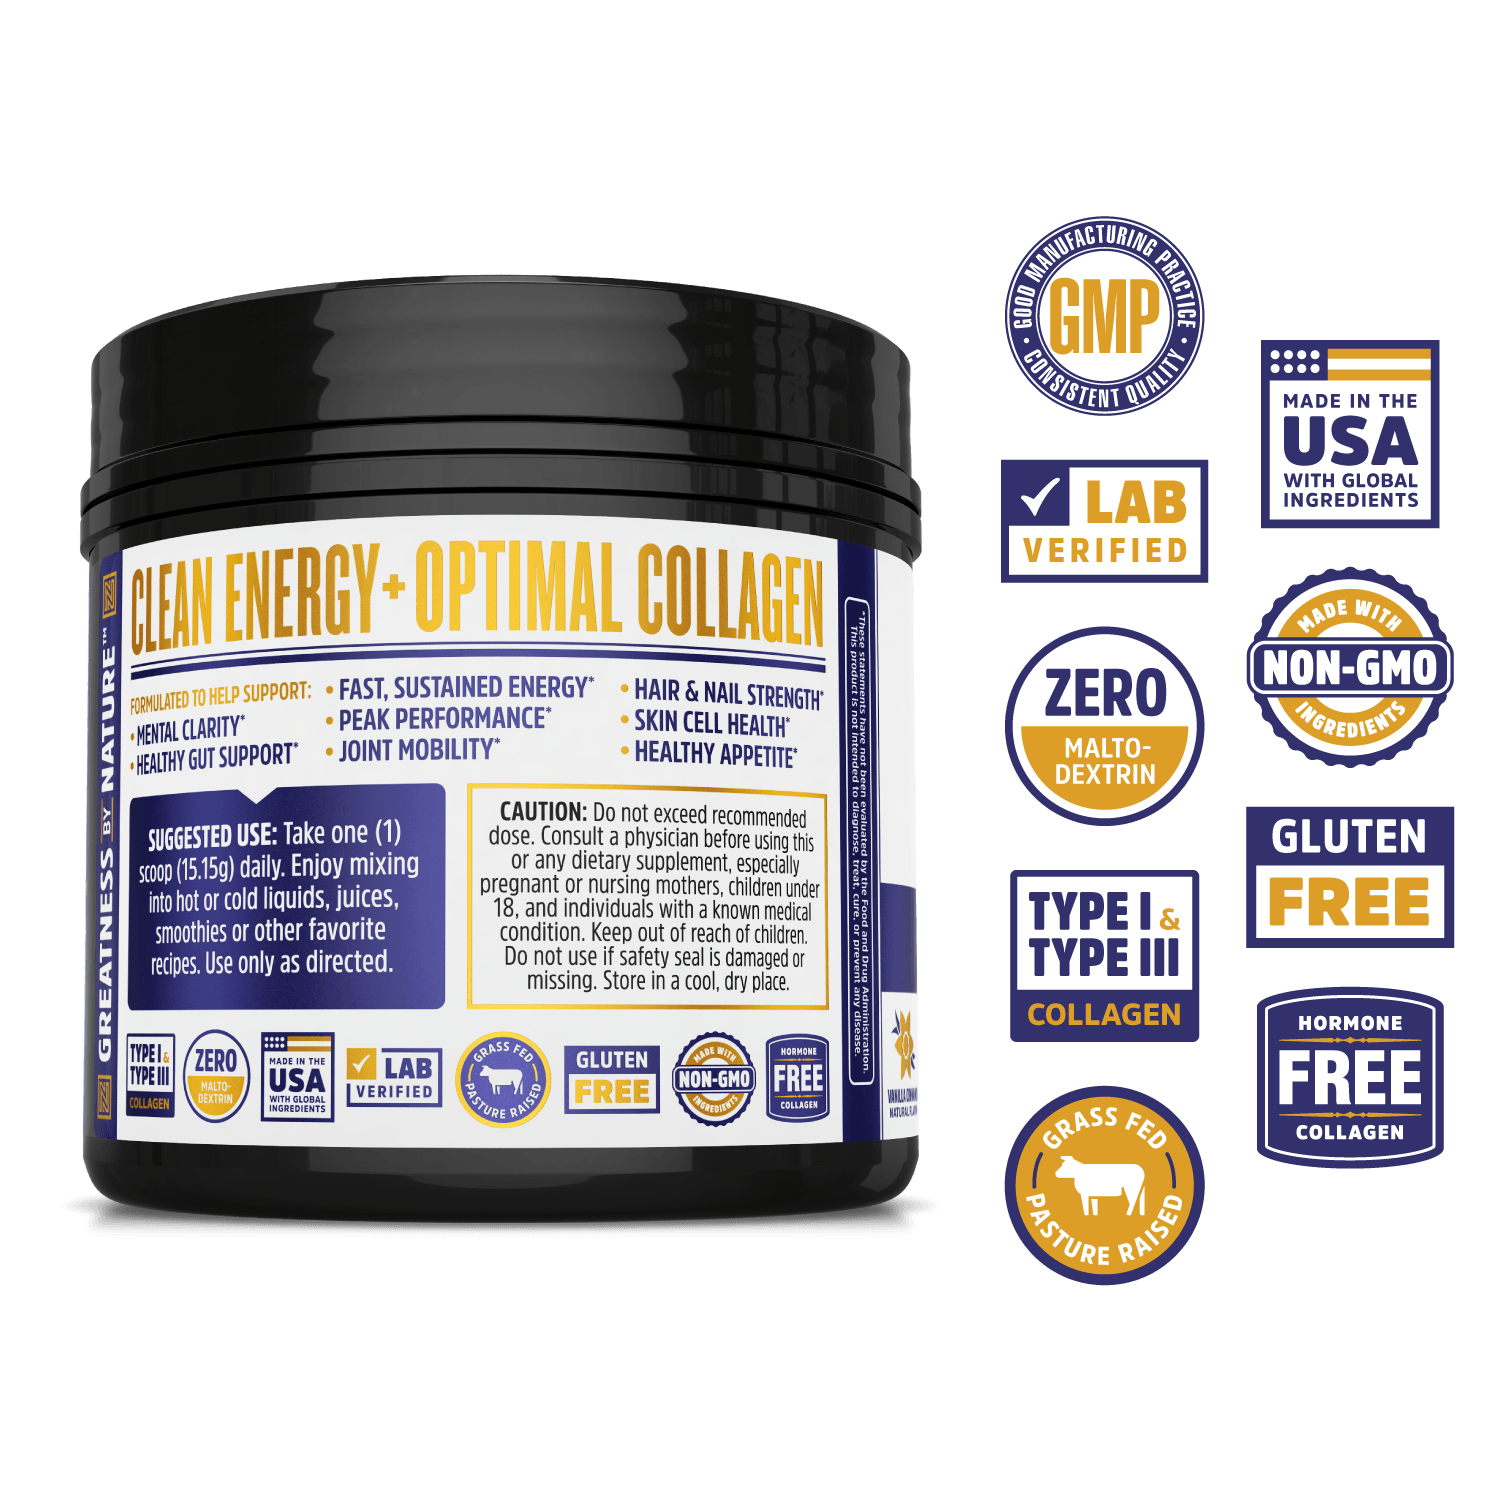 MCT & Collagen Powder from Zhou Nutrition, ketogenic energy and protein. Lab verified, good manufacturing practices, made in the USA with global ingredients, made with non-GMO ingredients, gluten free